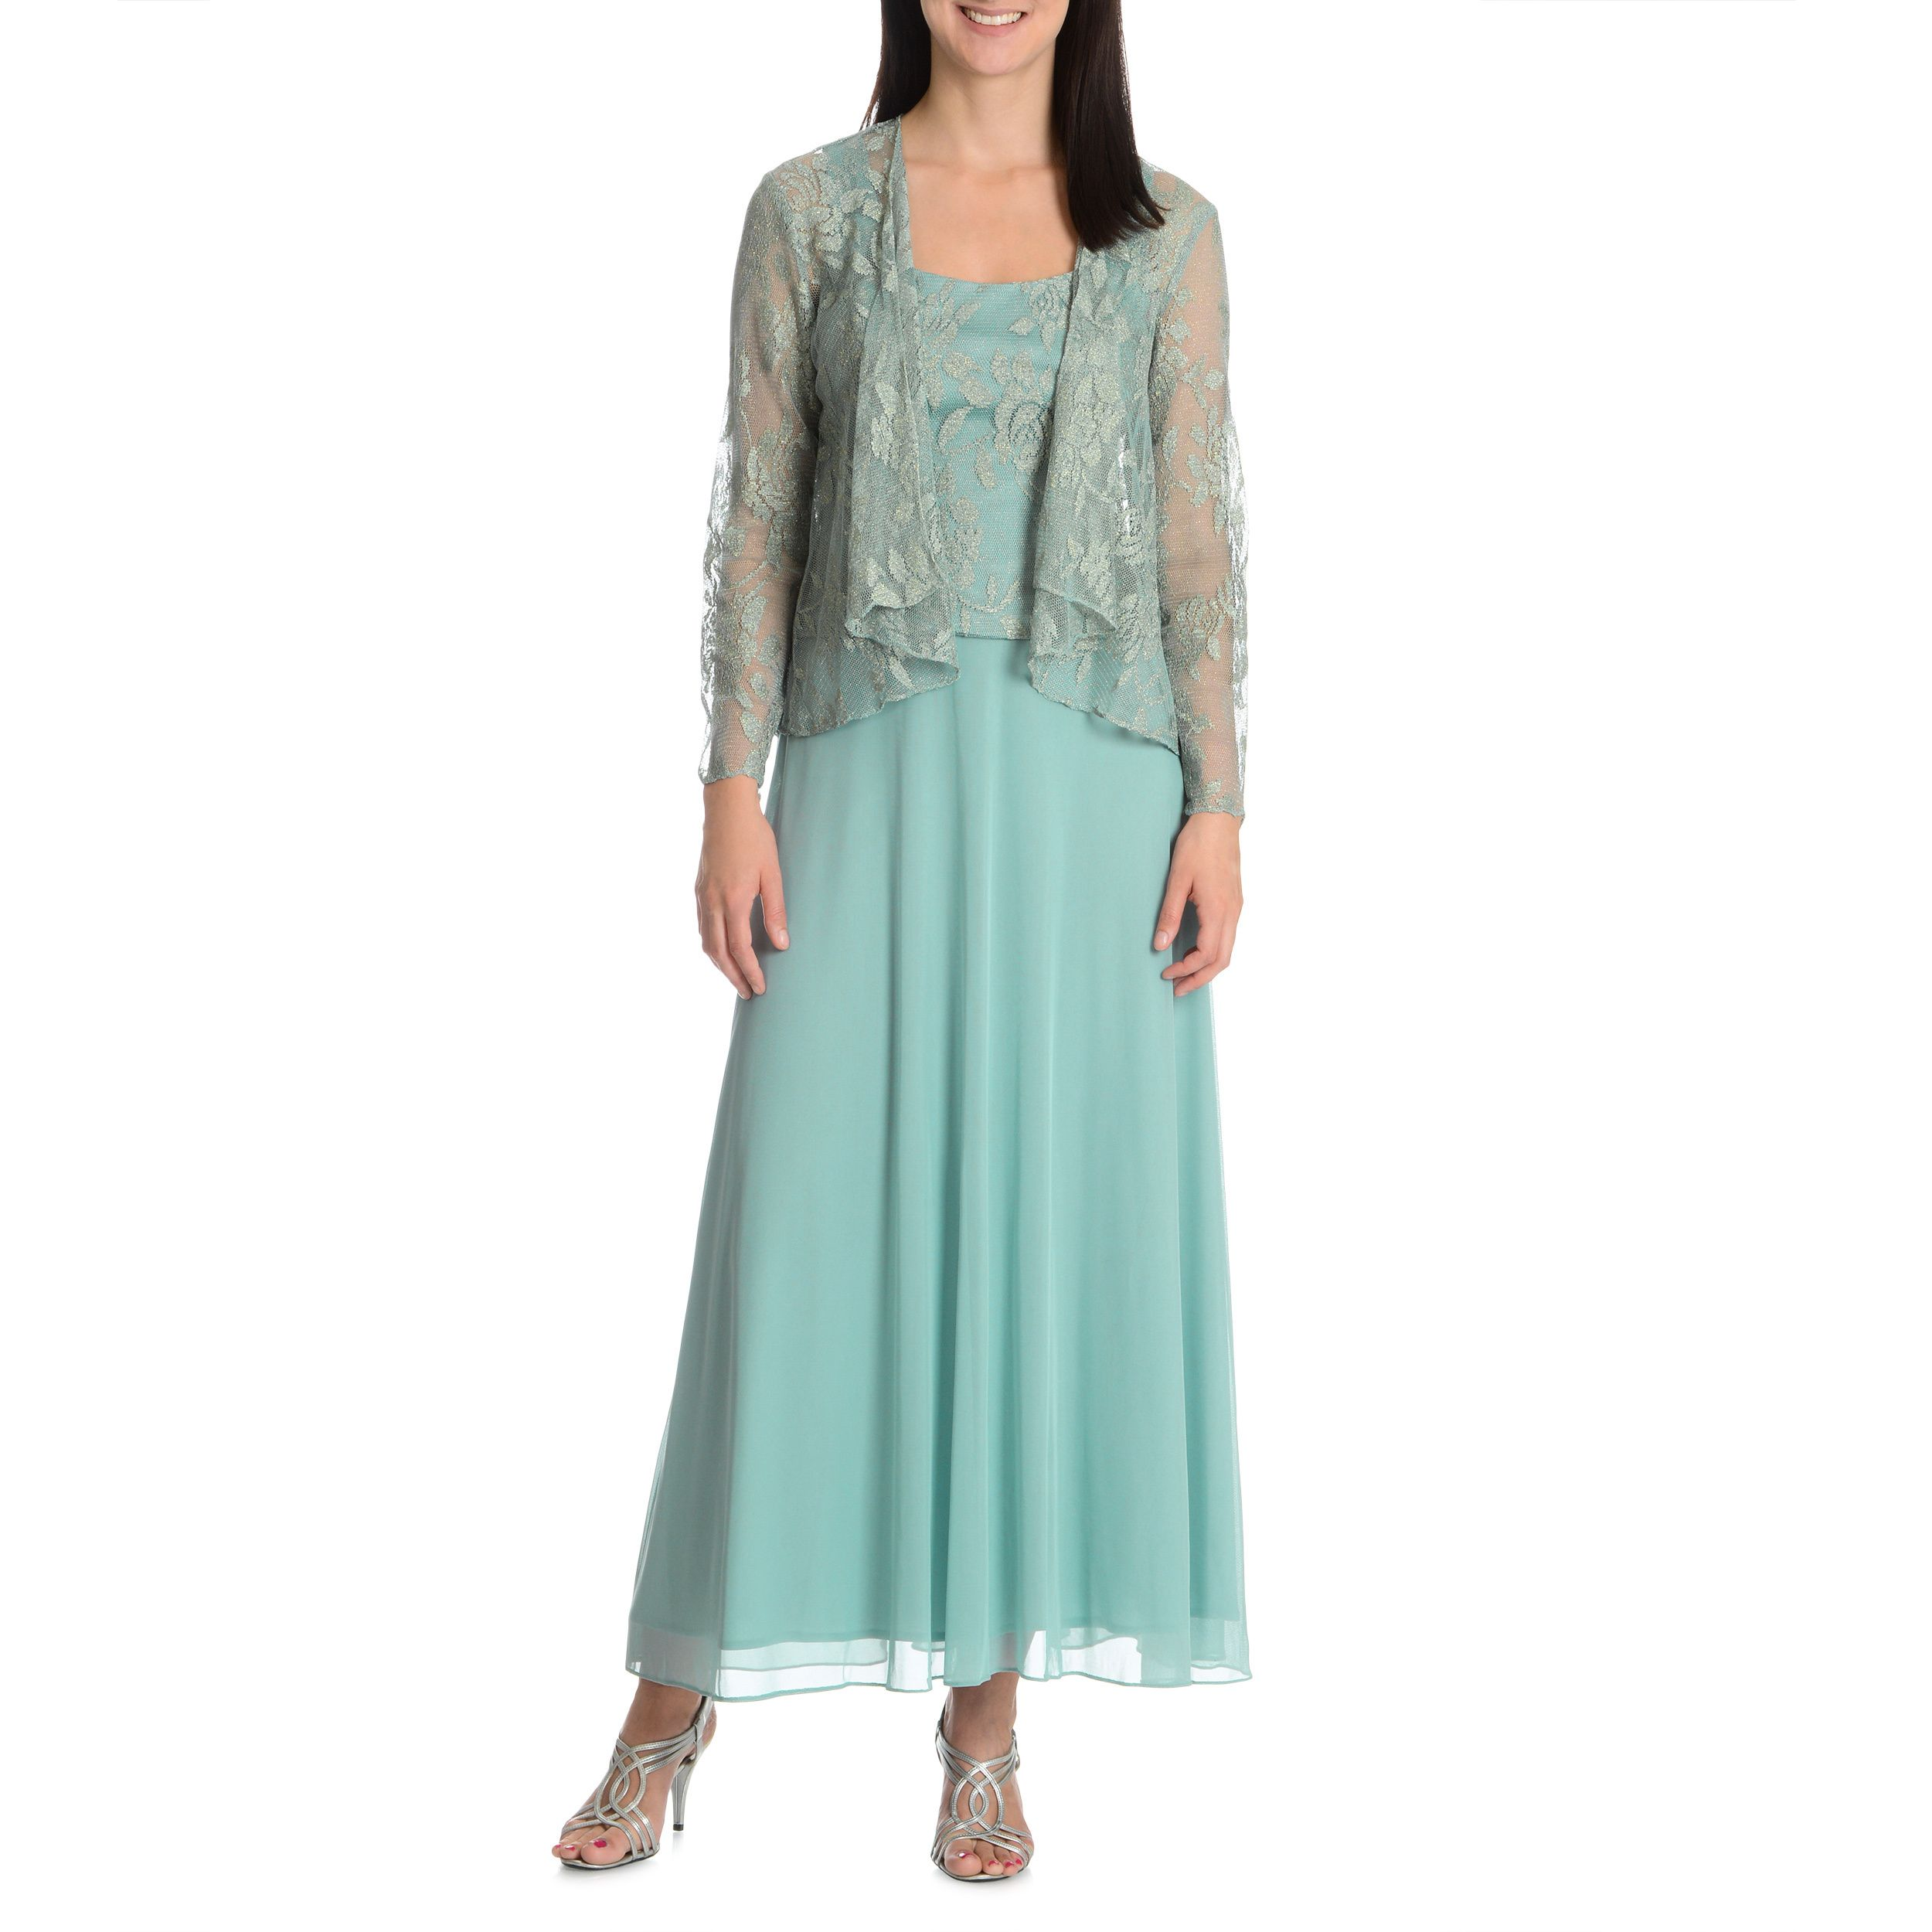 Patra Womens 2 Piece Evening Gown With Matching Sheer Cardigan